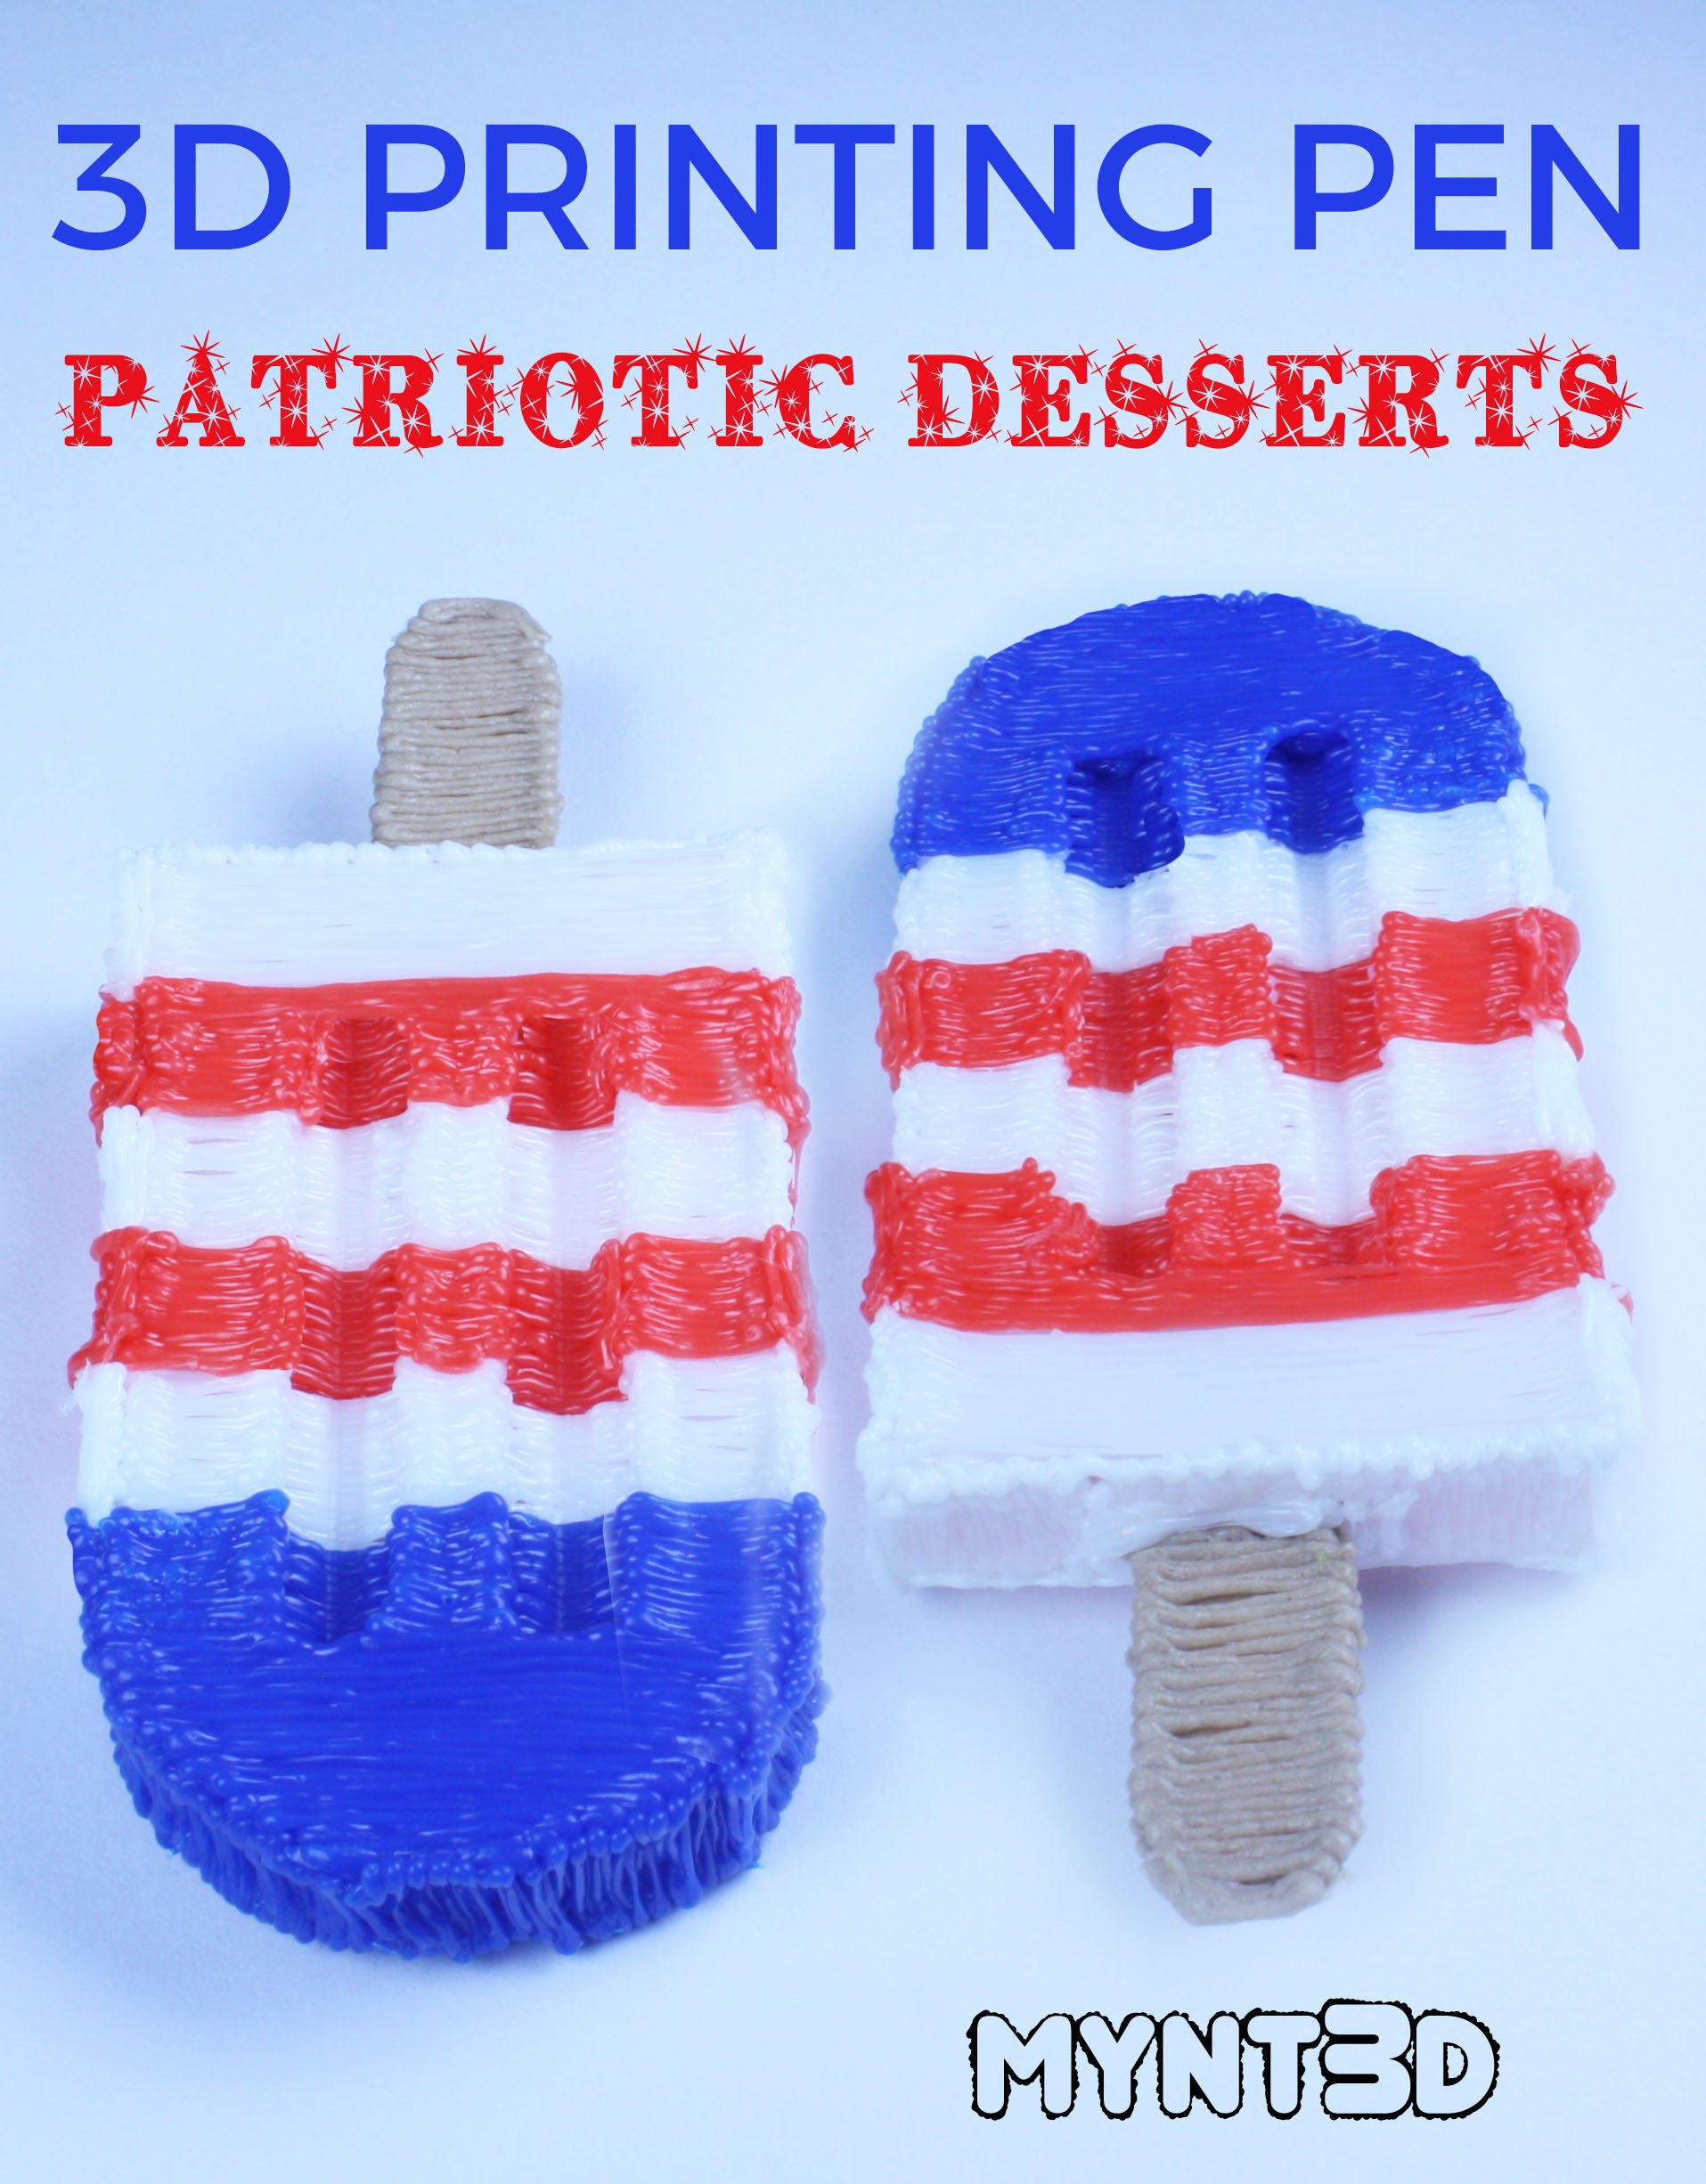 Patriotic Desserts Made with a 3D Pen